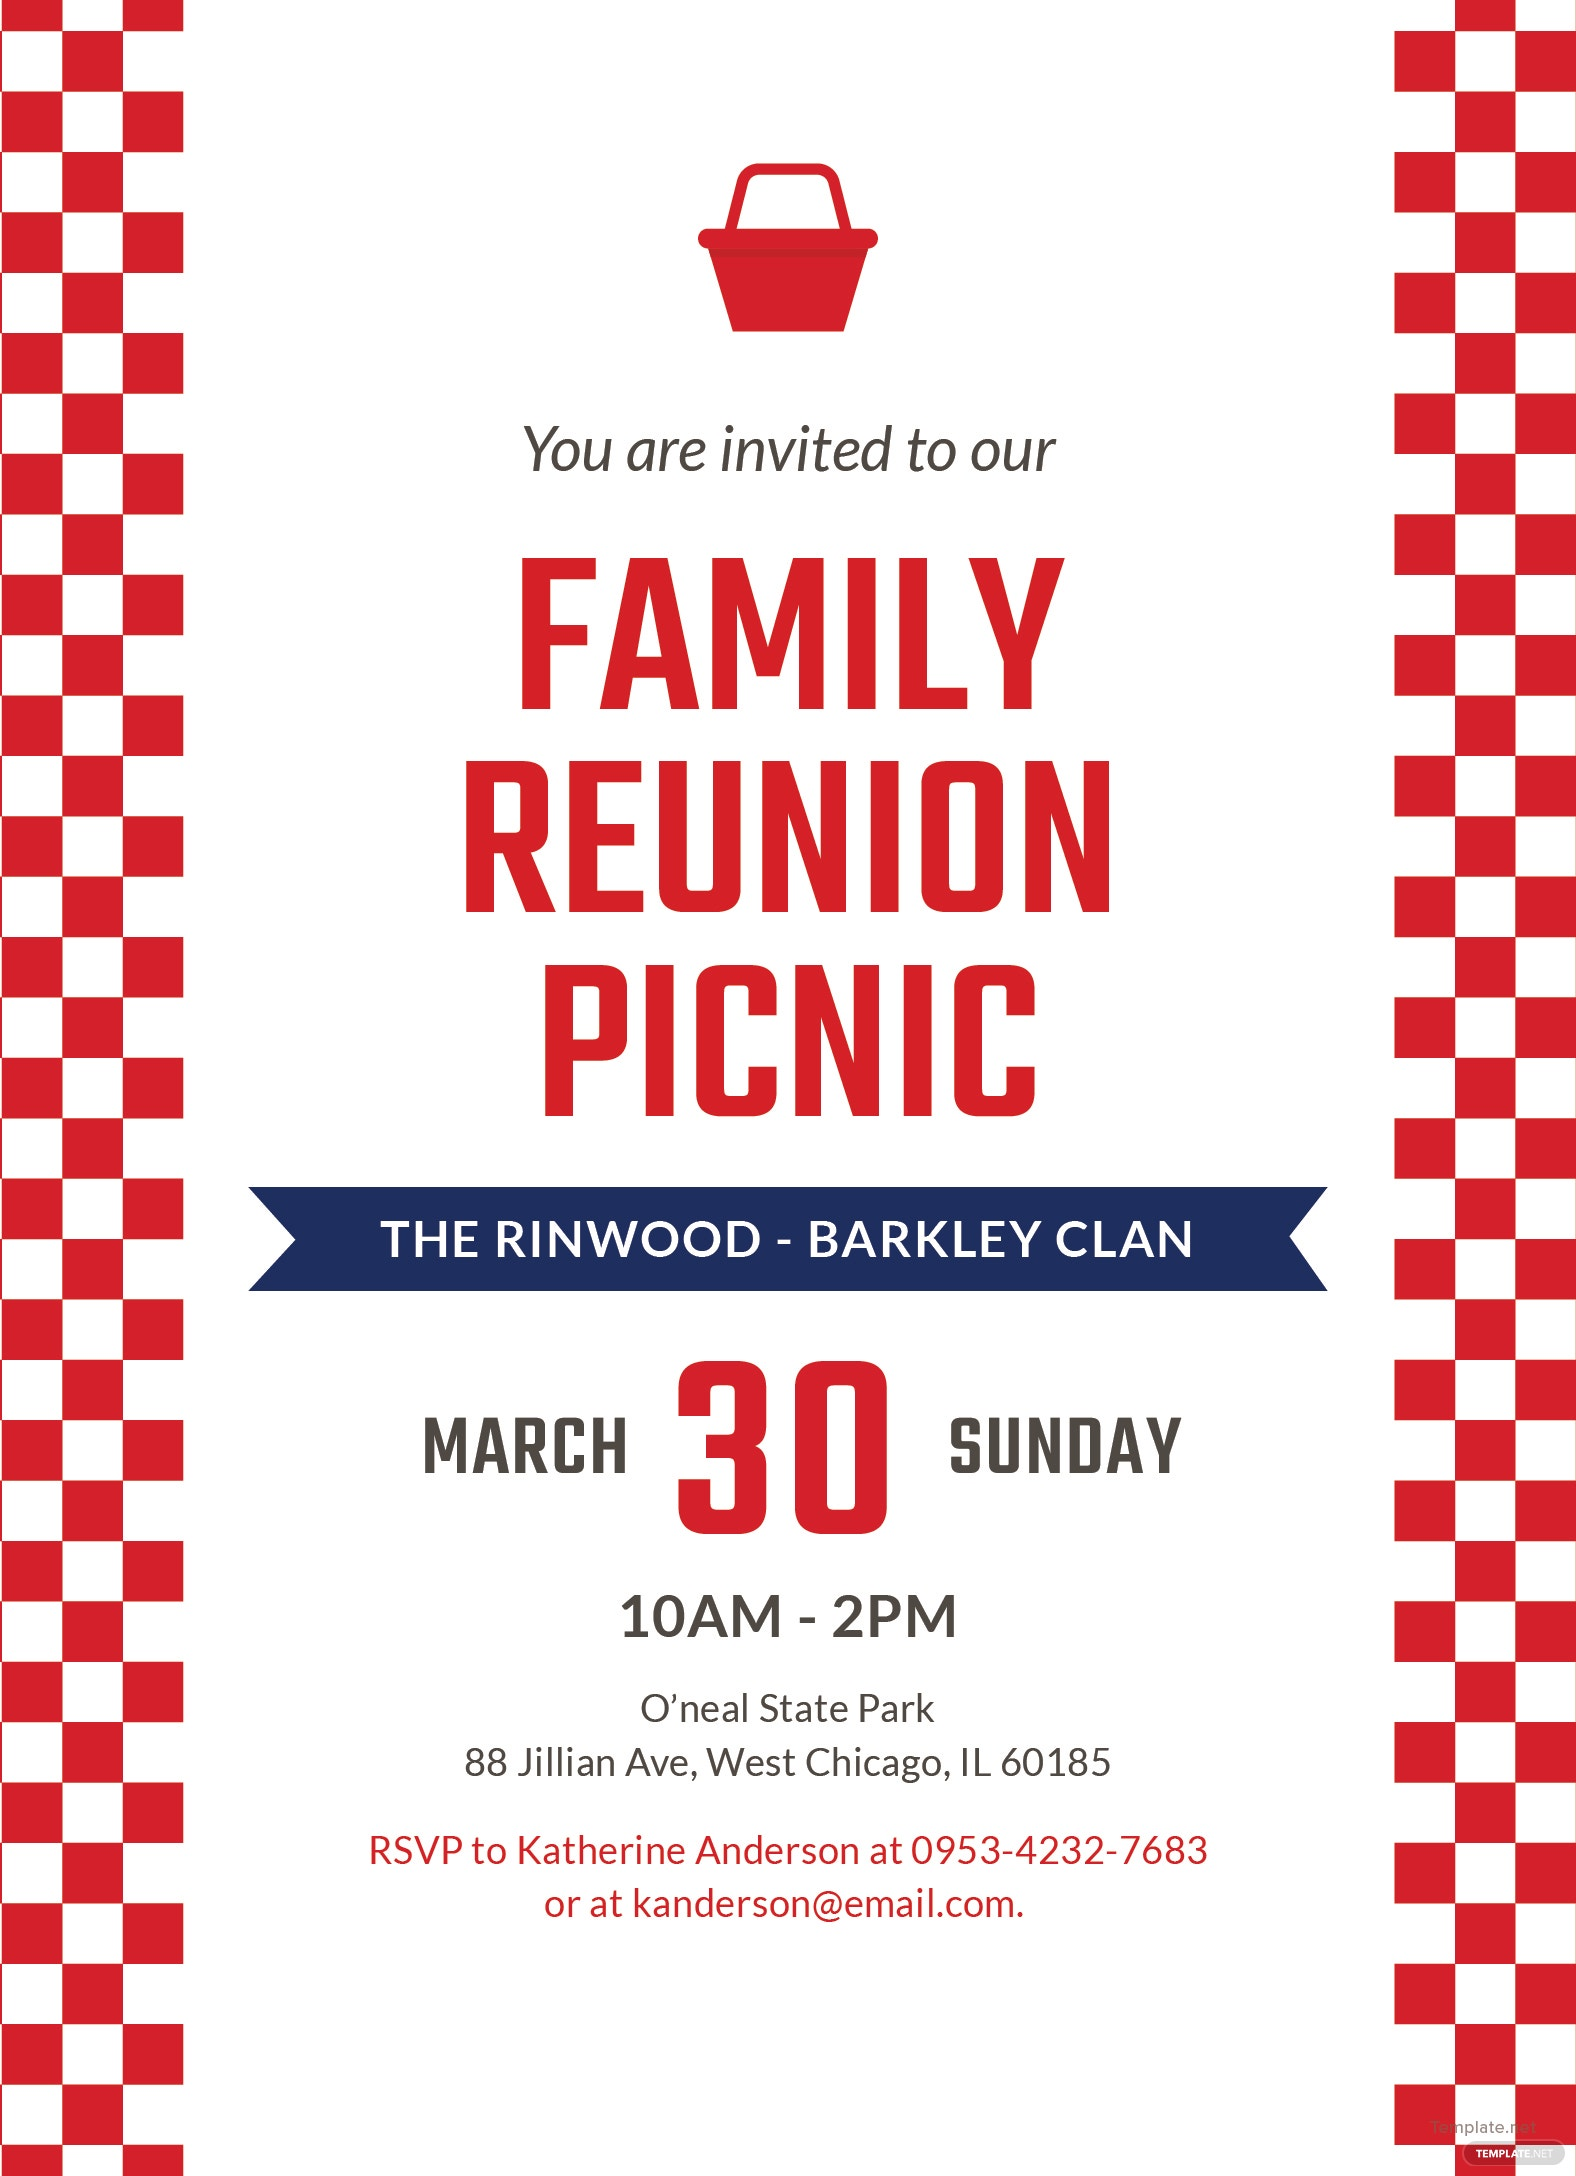 family reunion picnic invitation template in adobe